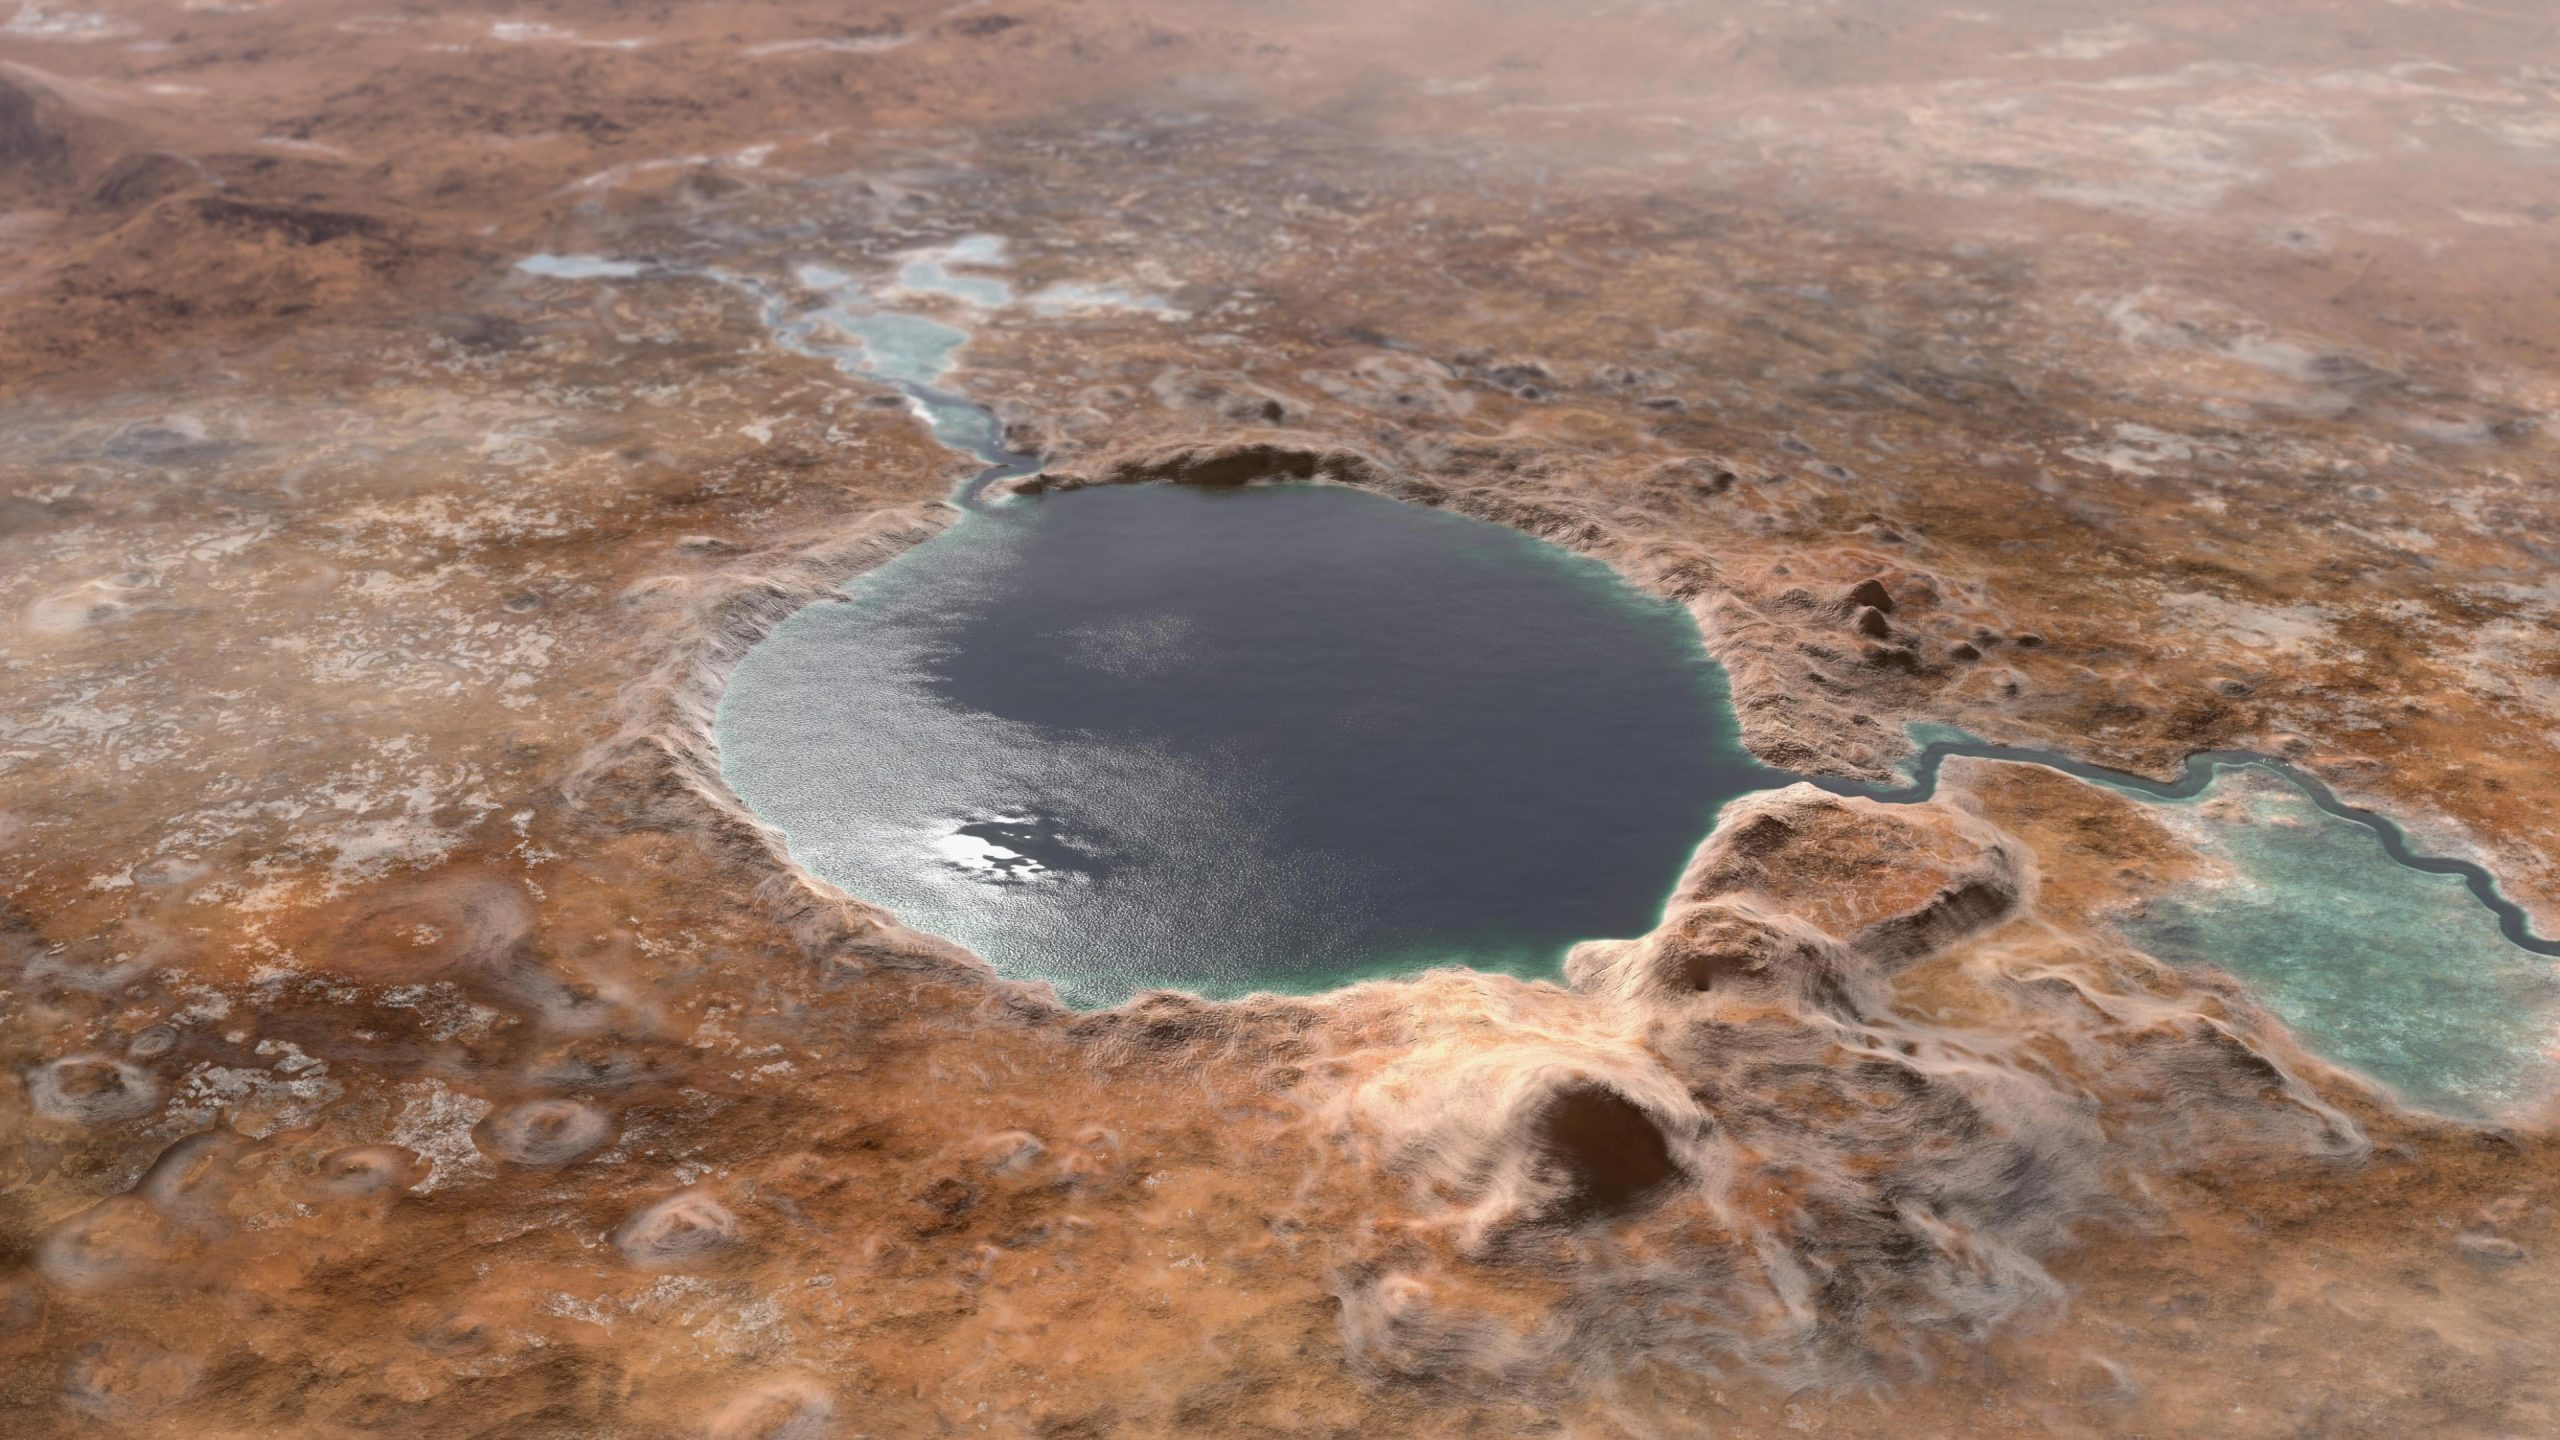 Jezero Crater – Landing Site of Mars Perseverance Rover – Was a Lake in Mars'  Ancient Past